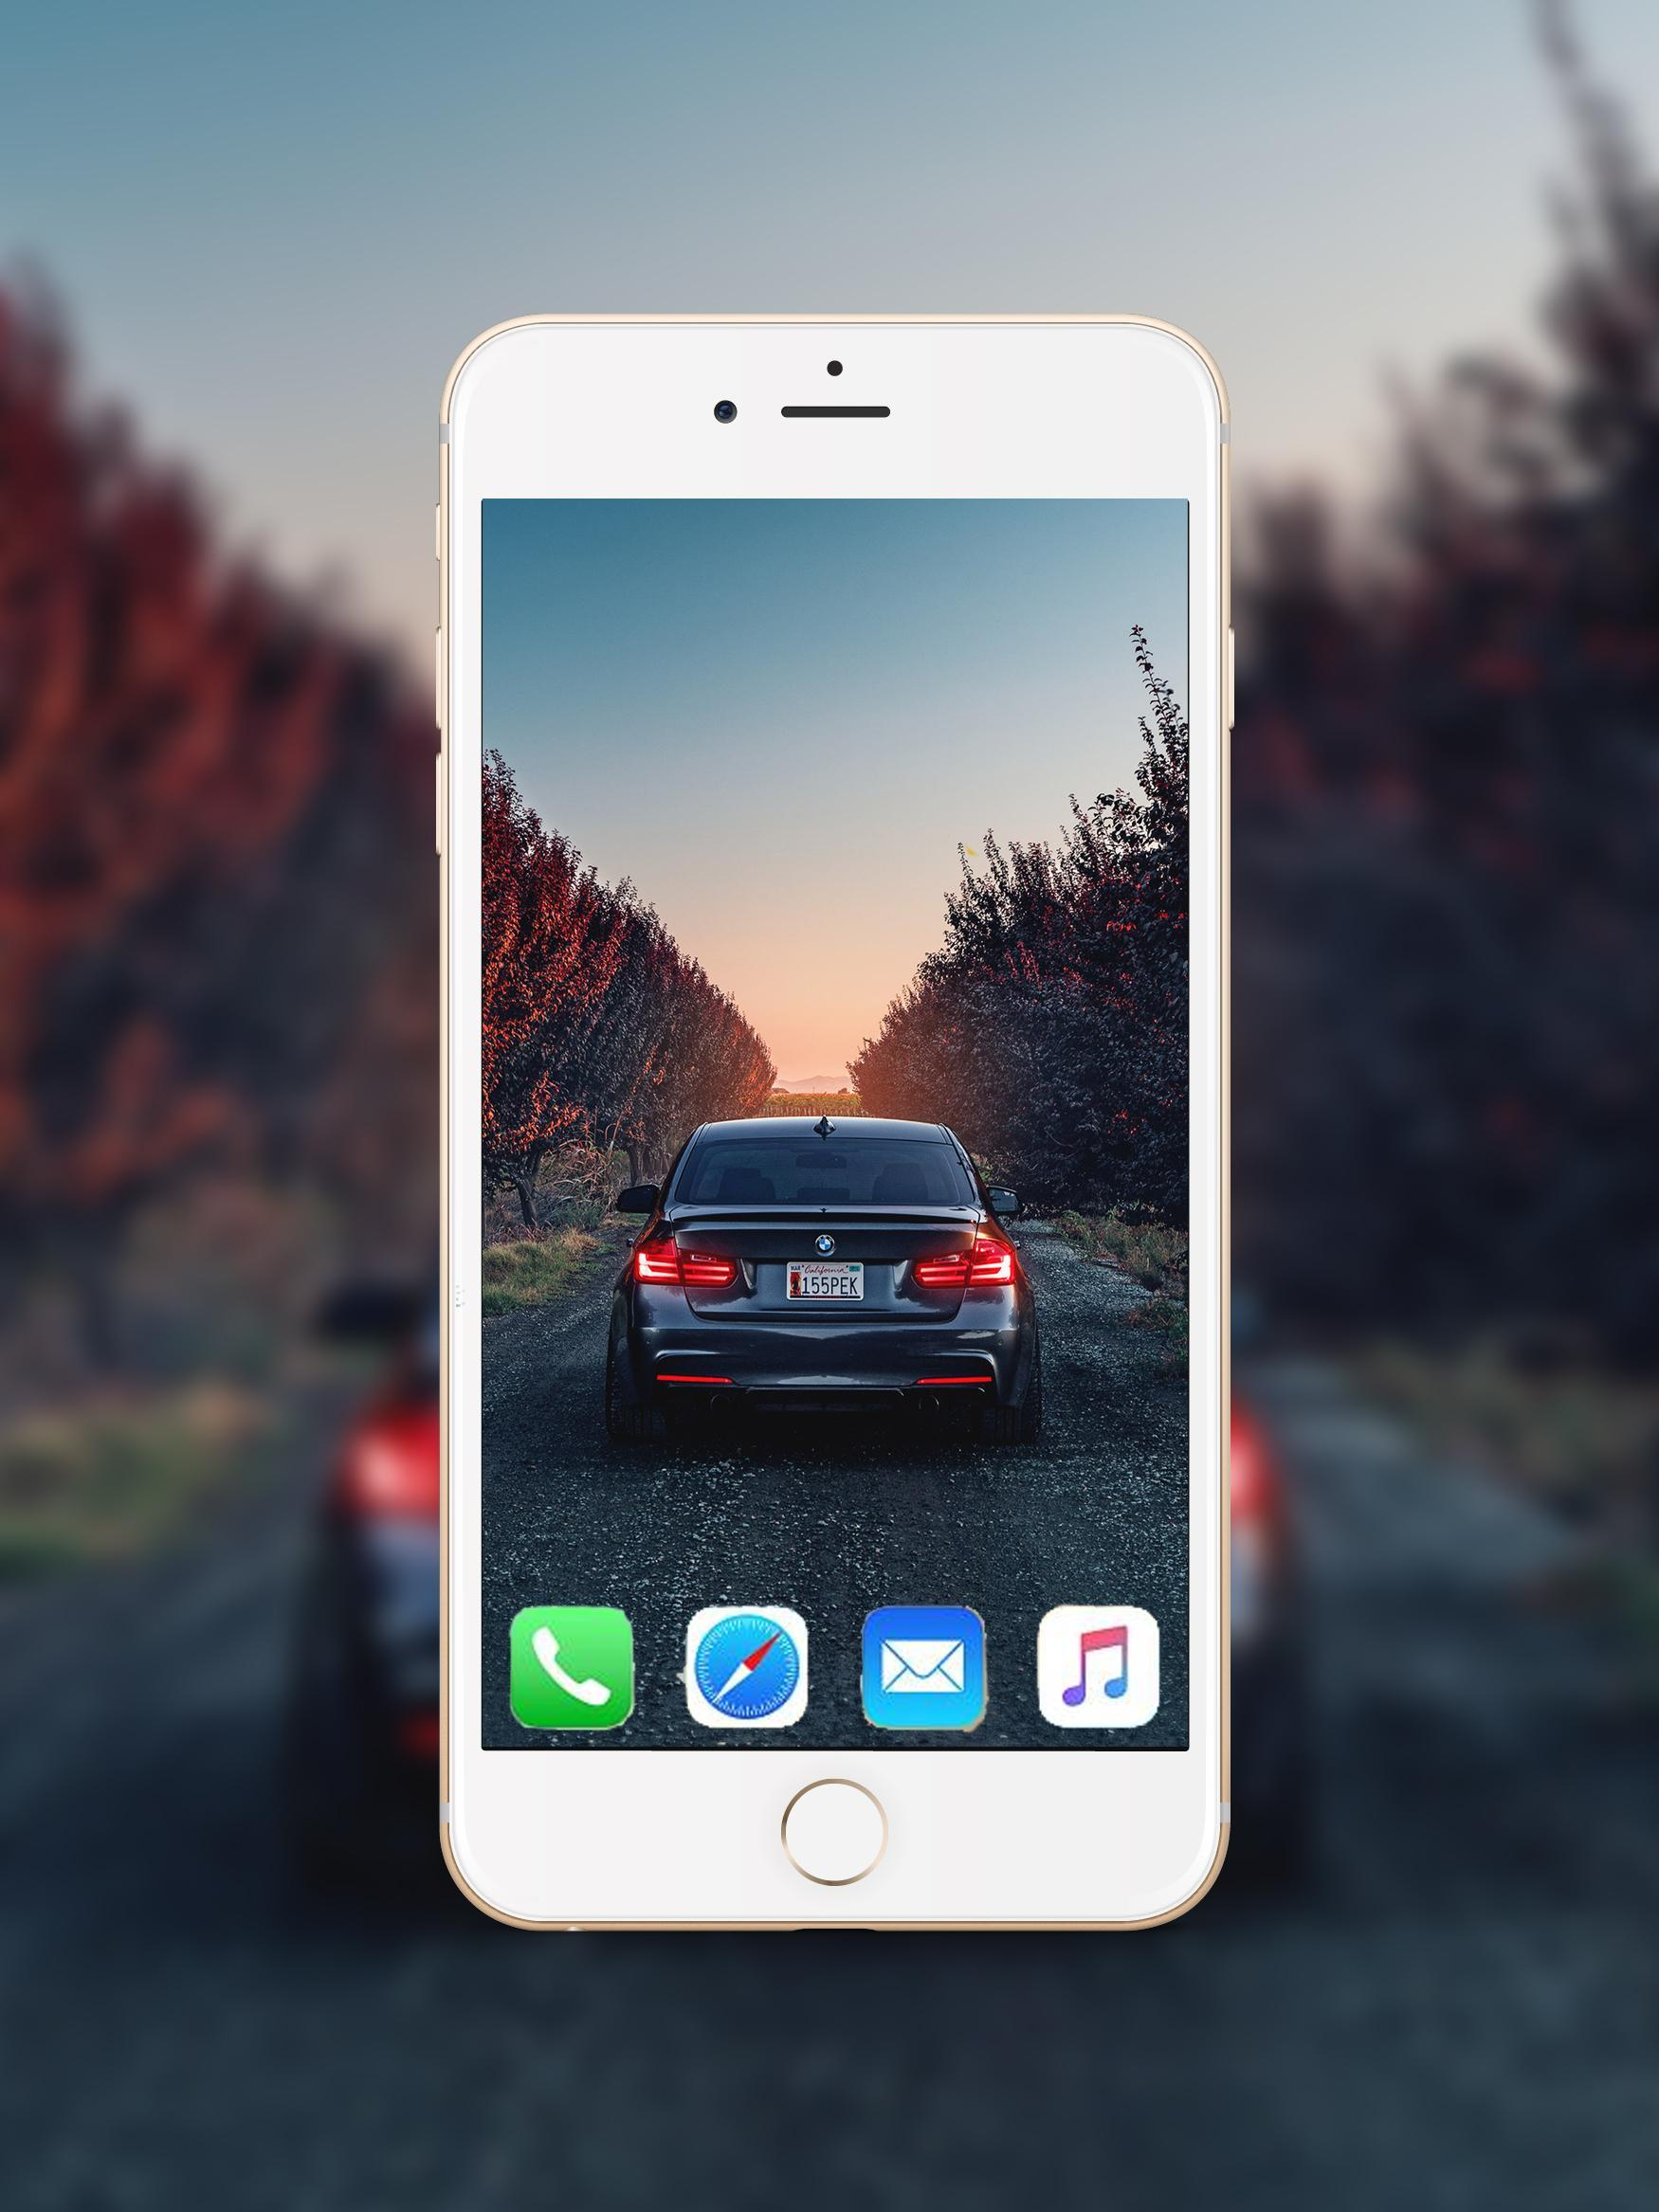 Bmw M3 Wallpaper For Android Apk Download